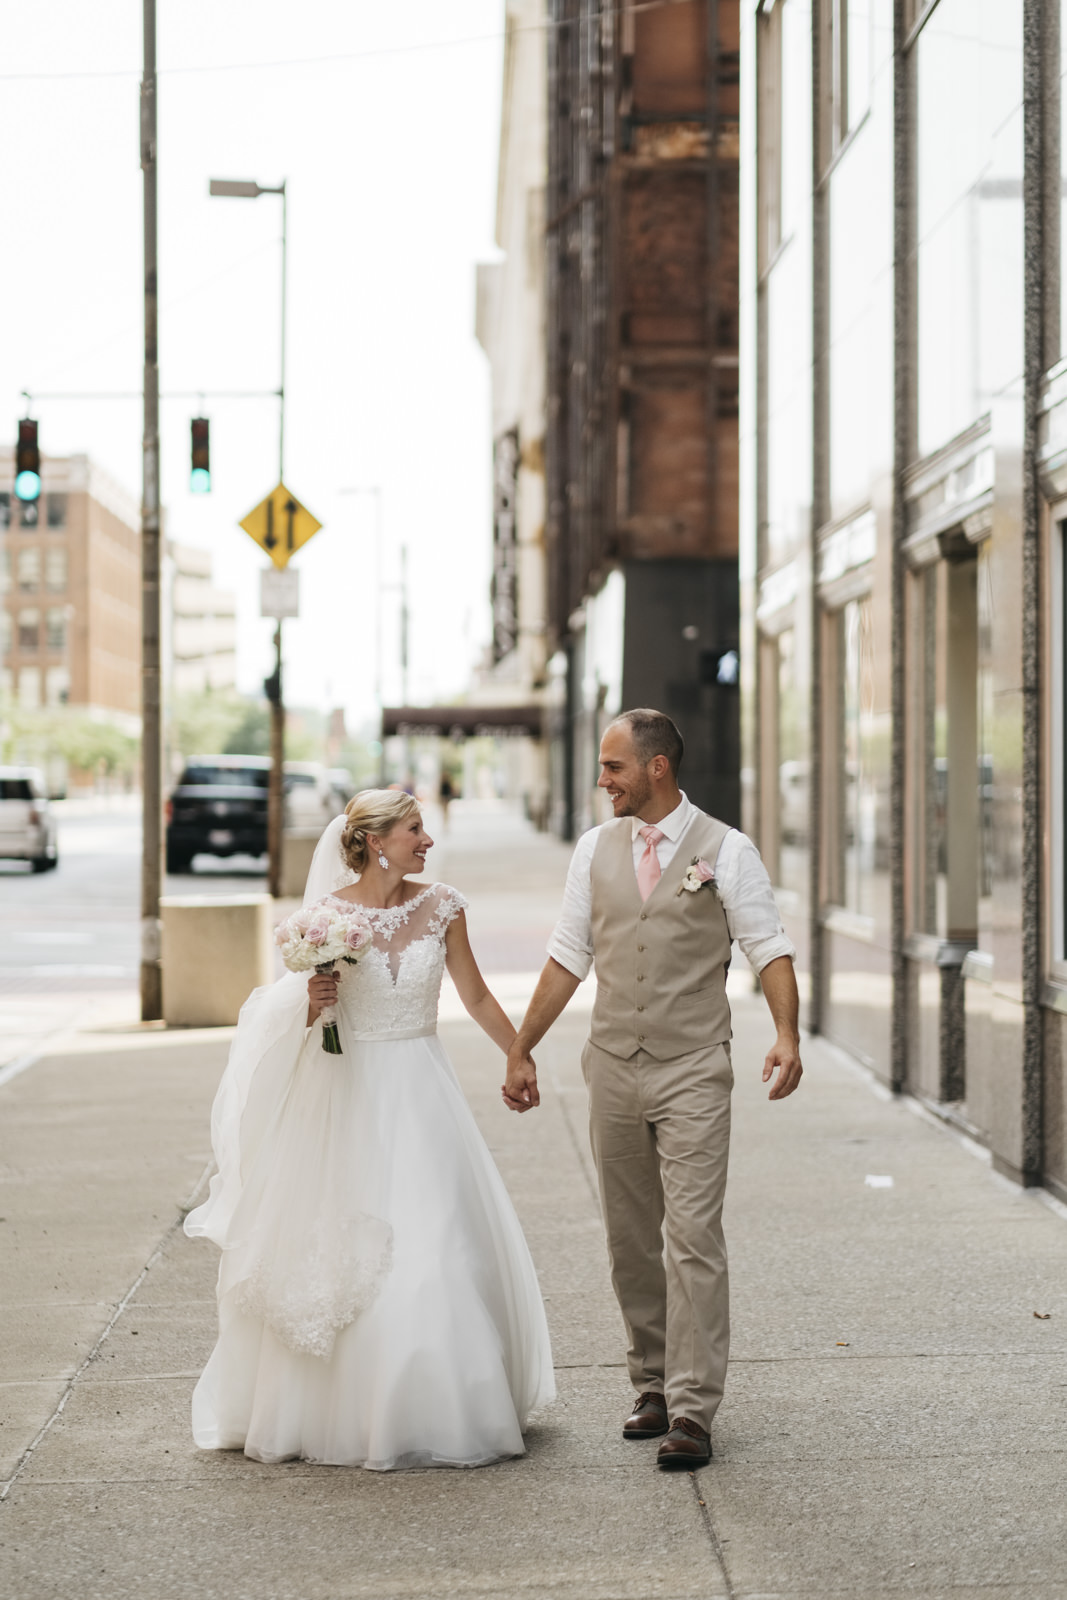 Bride and groom walk through downtown Toledo.